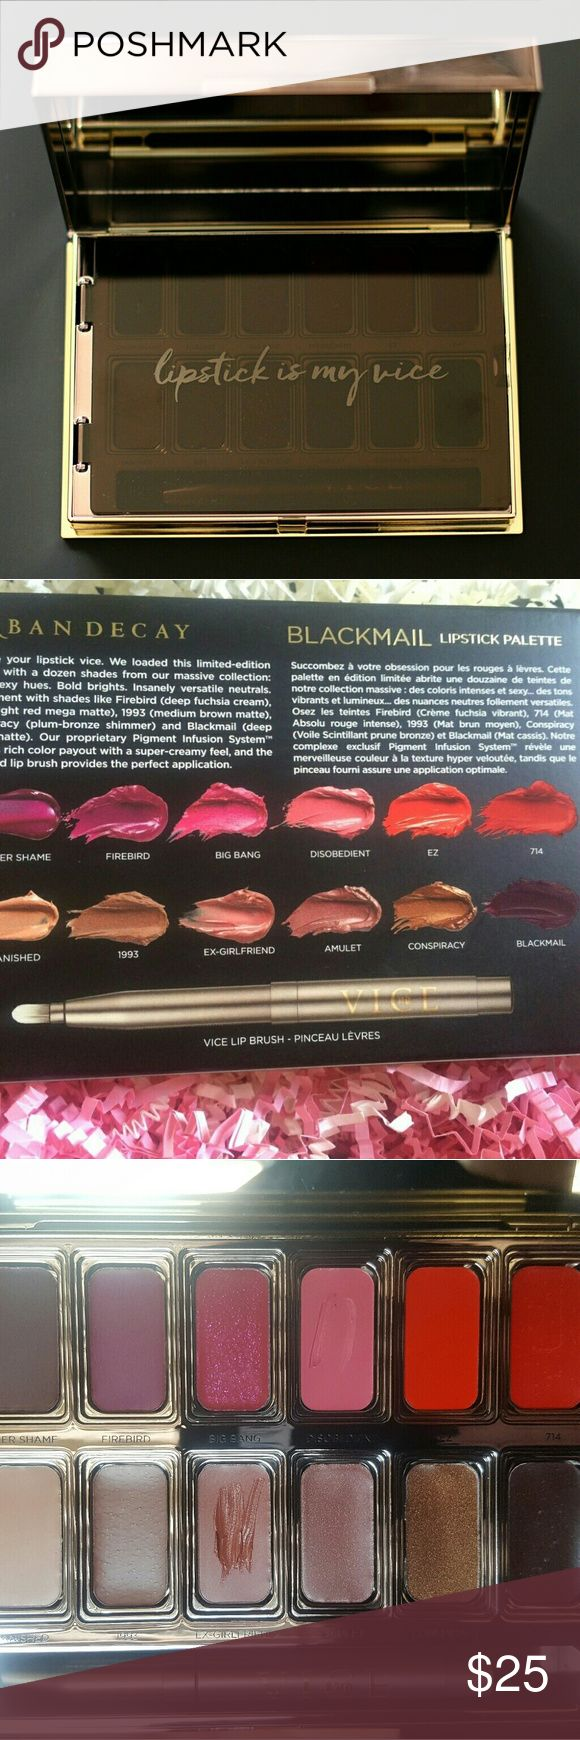 Urban Decay Vice lipstick palette Disobedient  and Ex-girlfriend were used once with a sterile lip brush  (not the one included with the palette) on a model. Urban Decay Makeup Lipstick